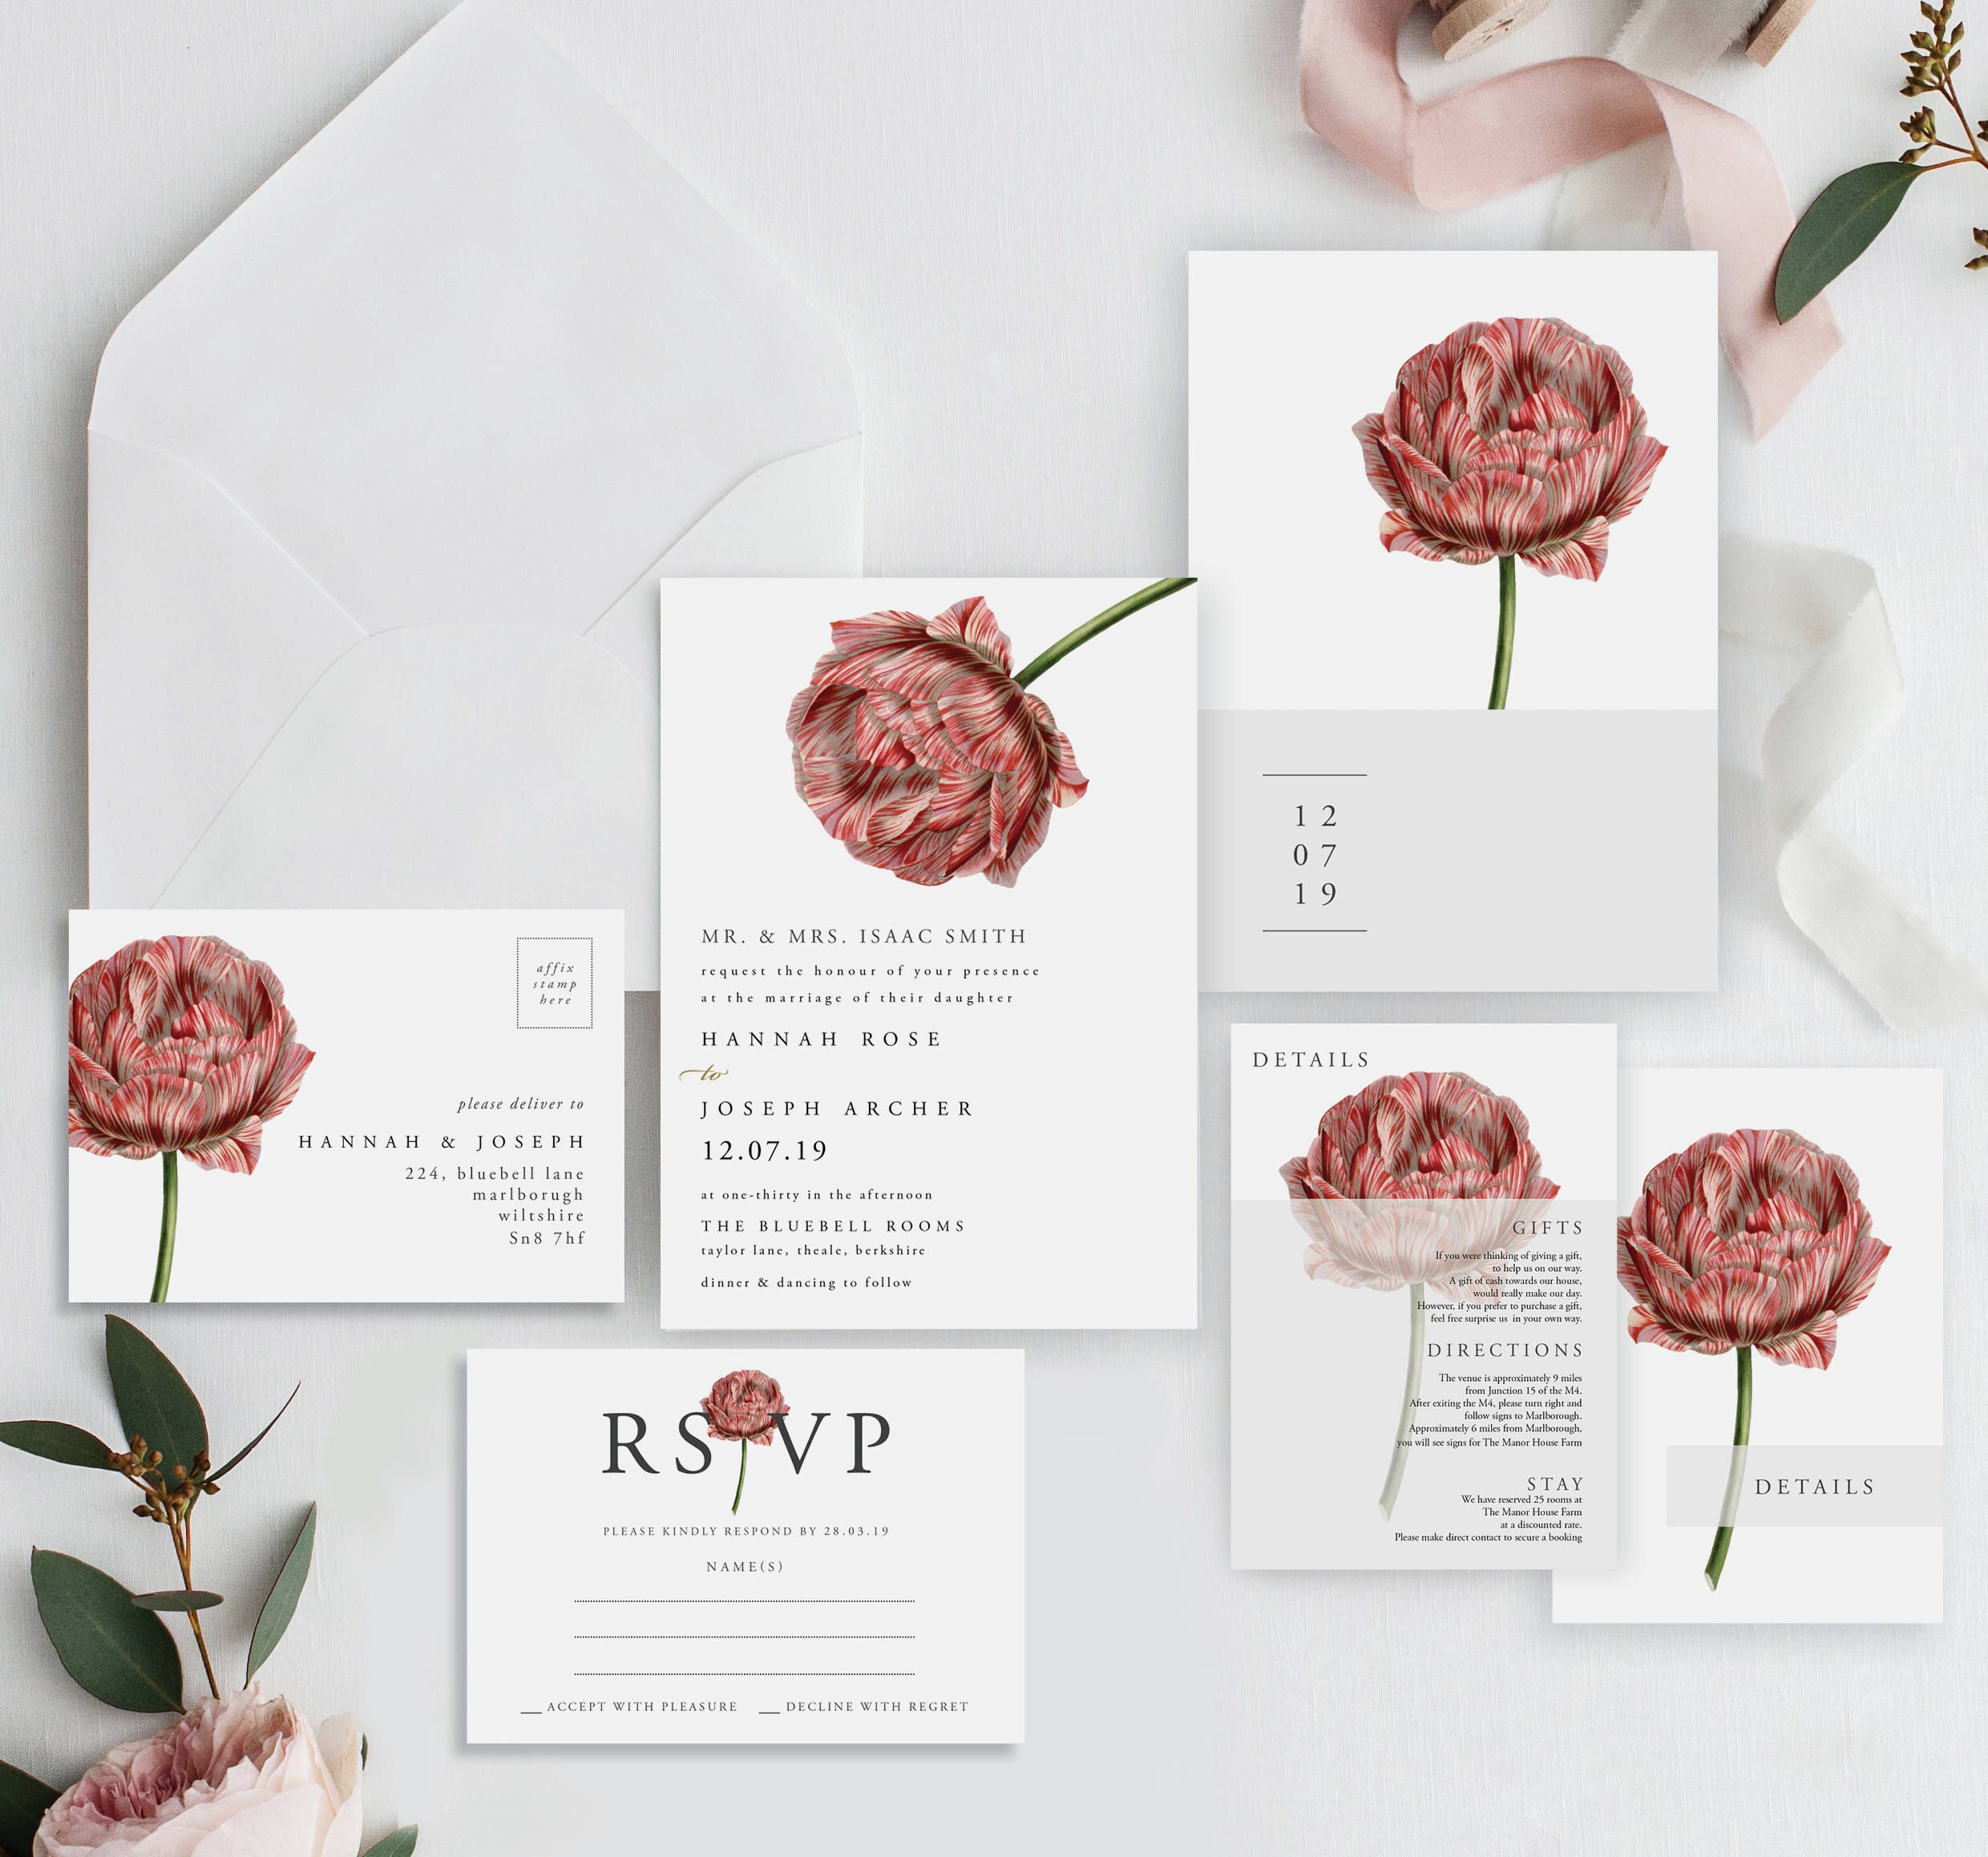 Matilda Modern Botanical Wedding Invitations Wedding Invites